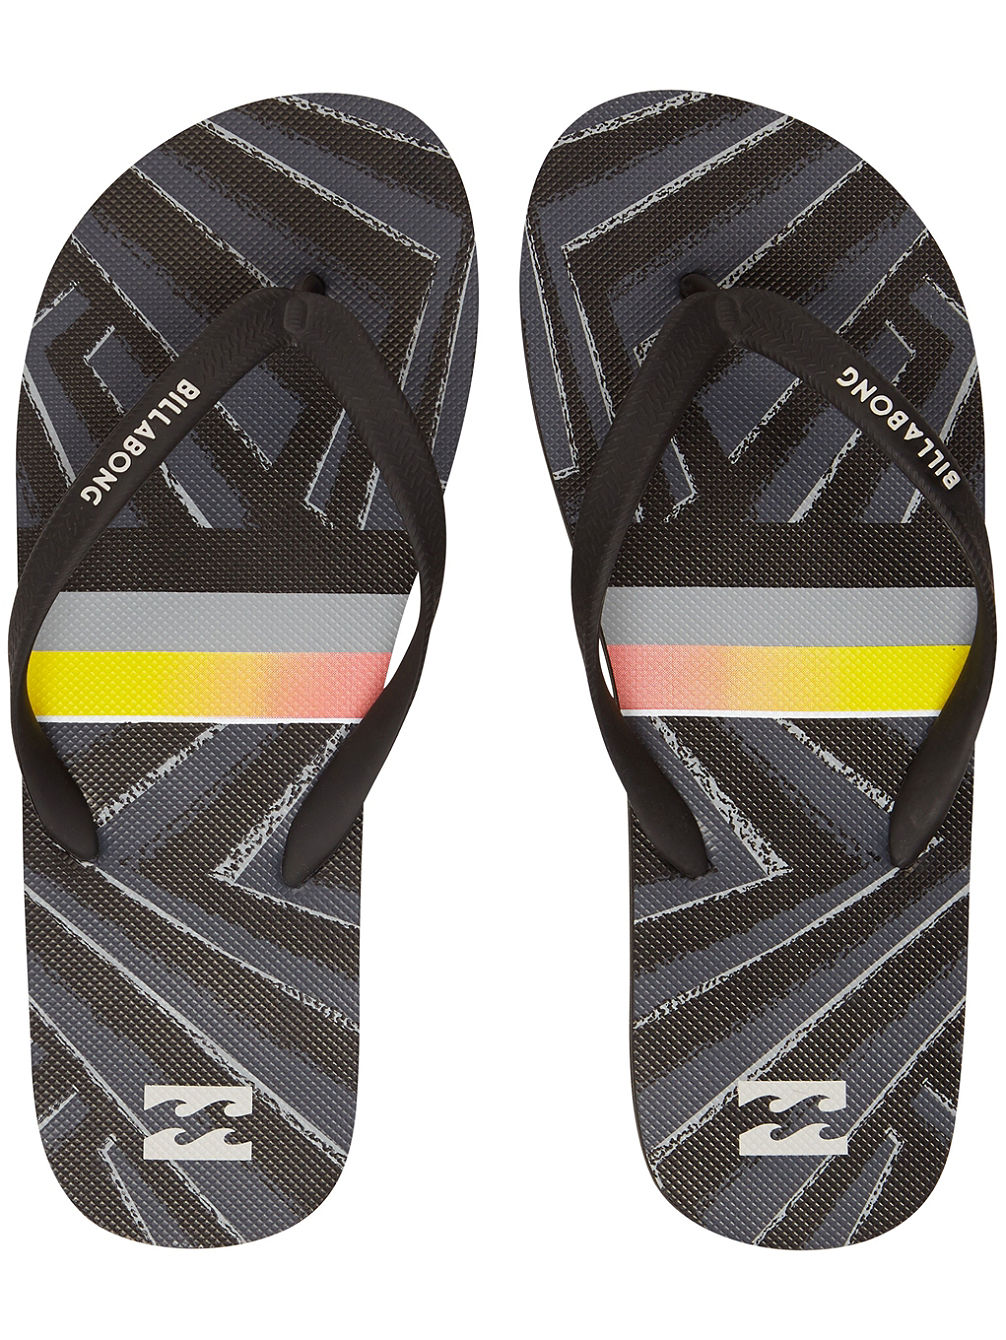 Tides Surftrash Sandals